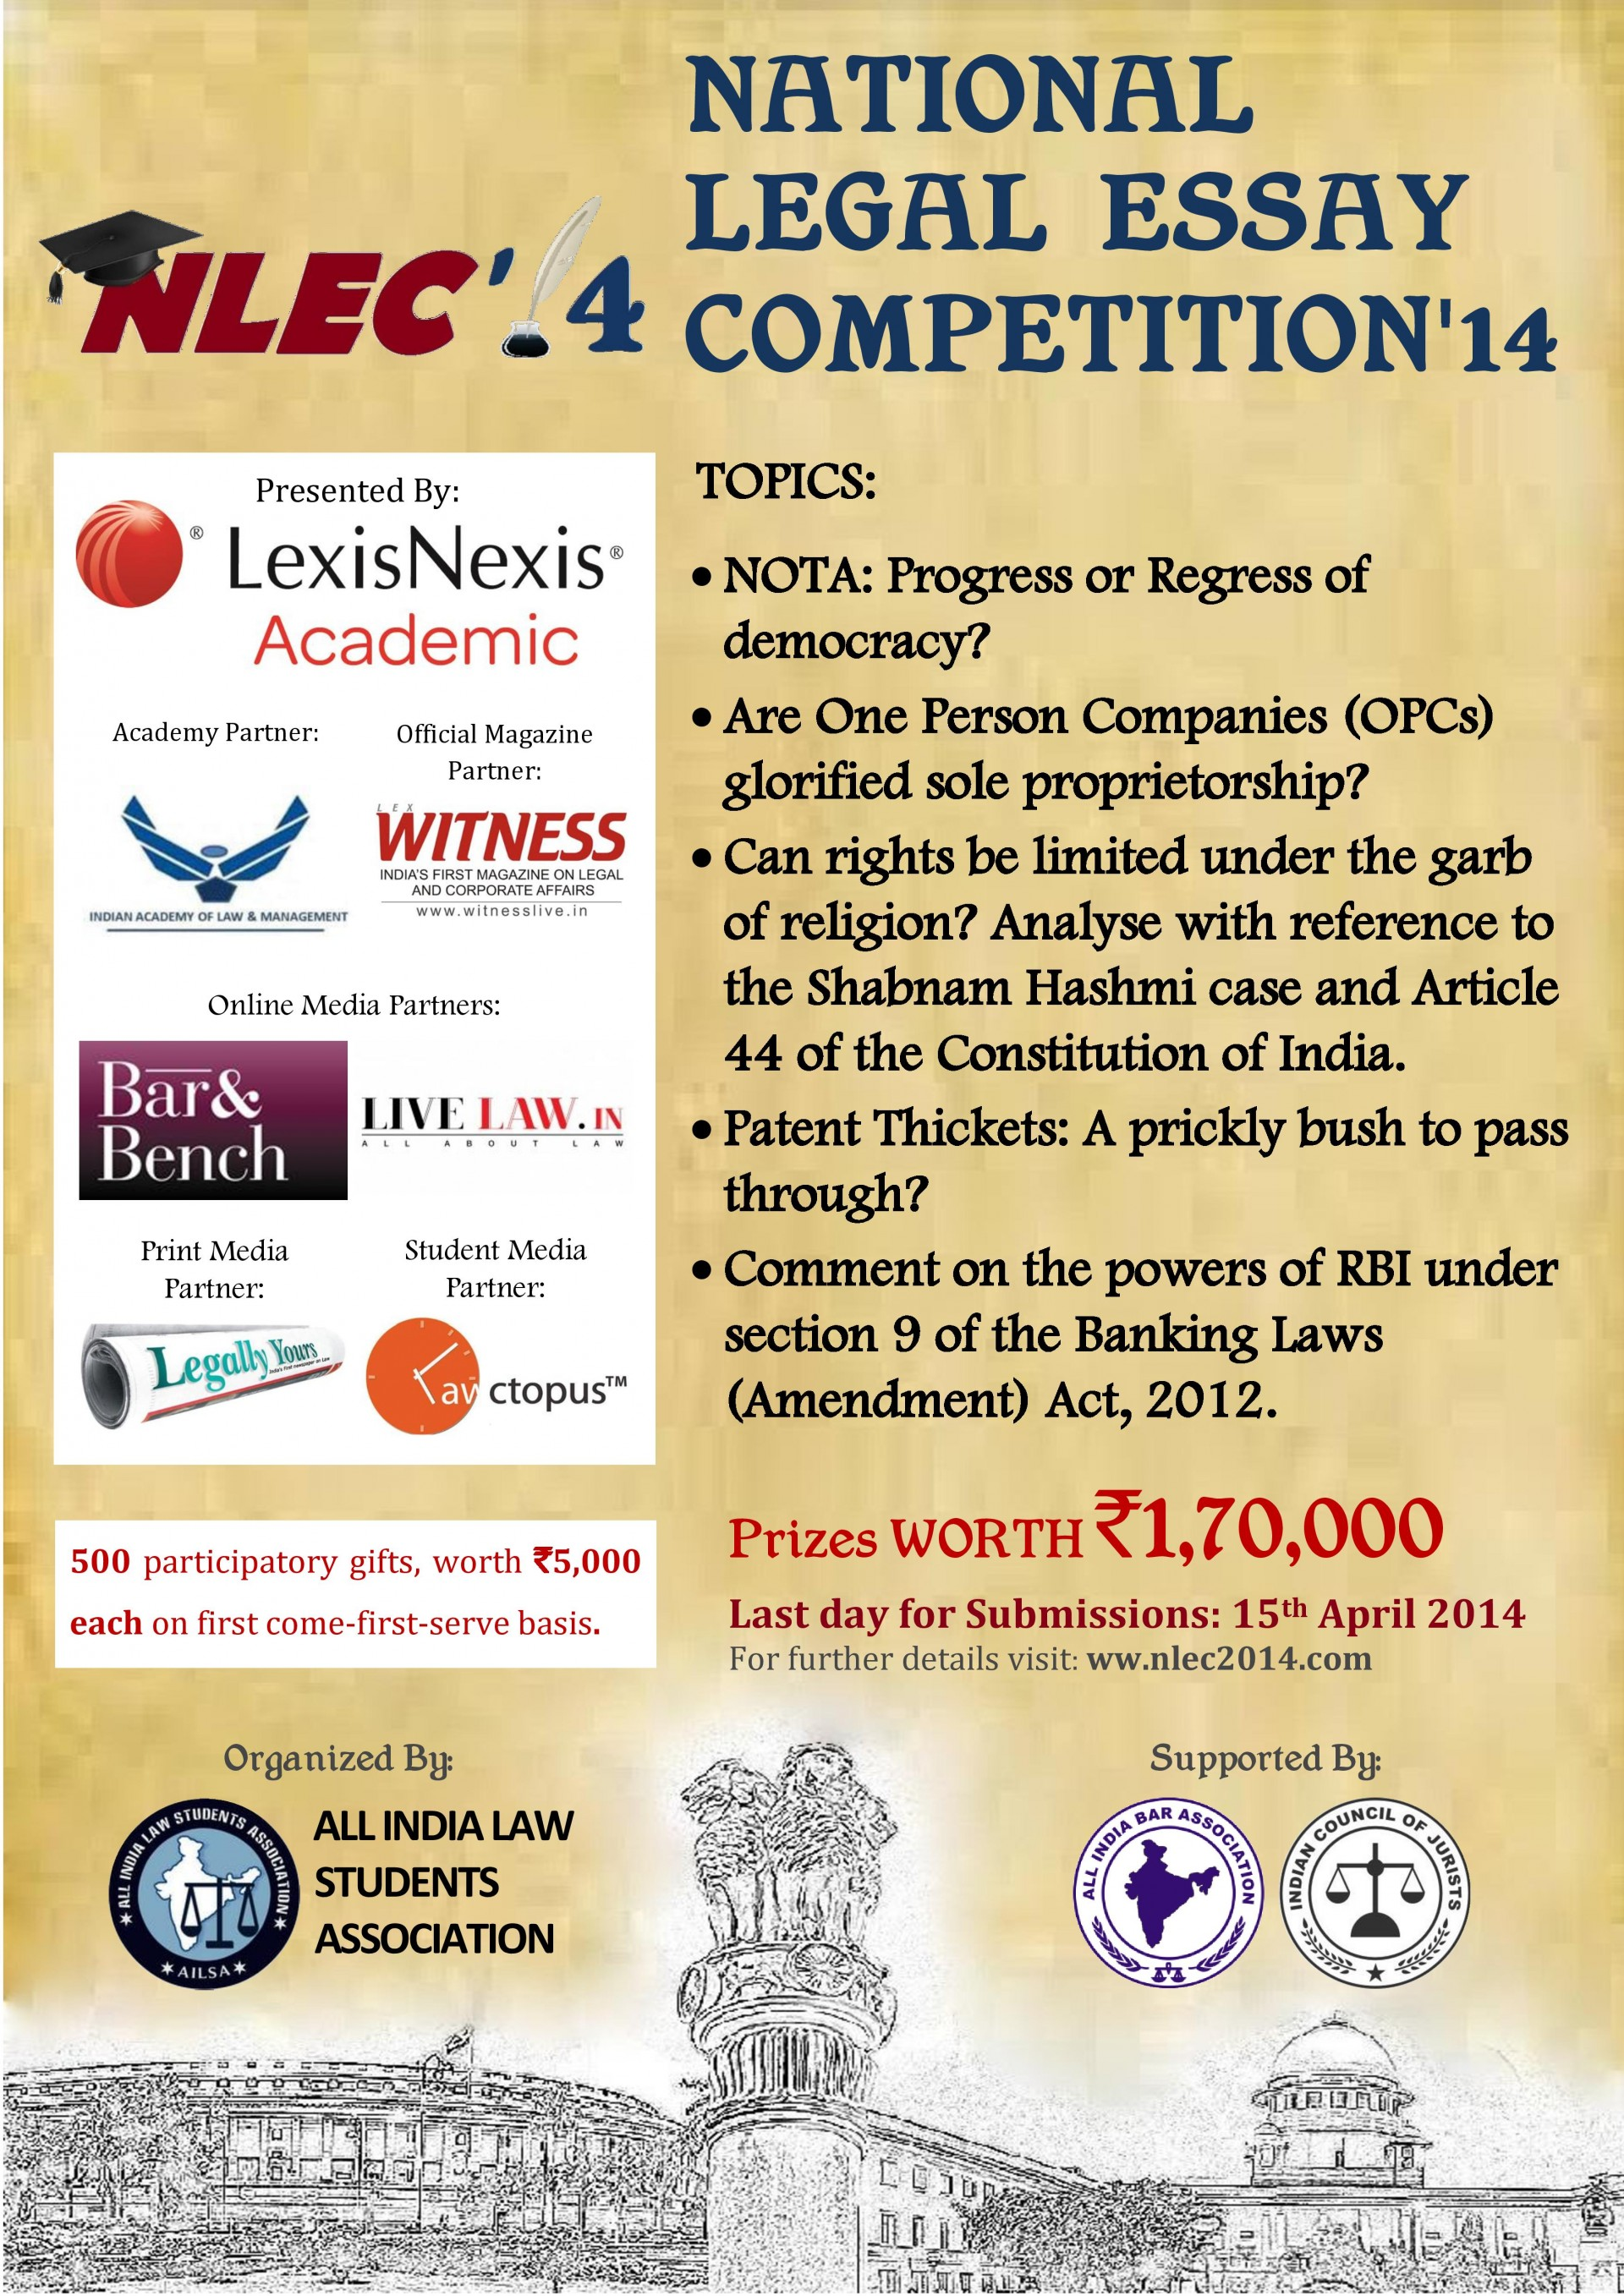 008 Essay Writing Competitions In India Custom Paper Academic Competition For College Students P Topics Contests Imposing 2014 Maryknoll Contest Winners 1920